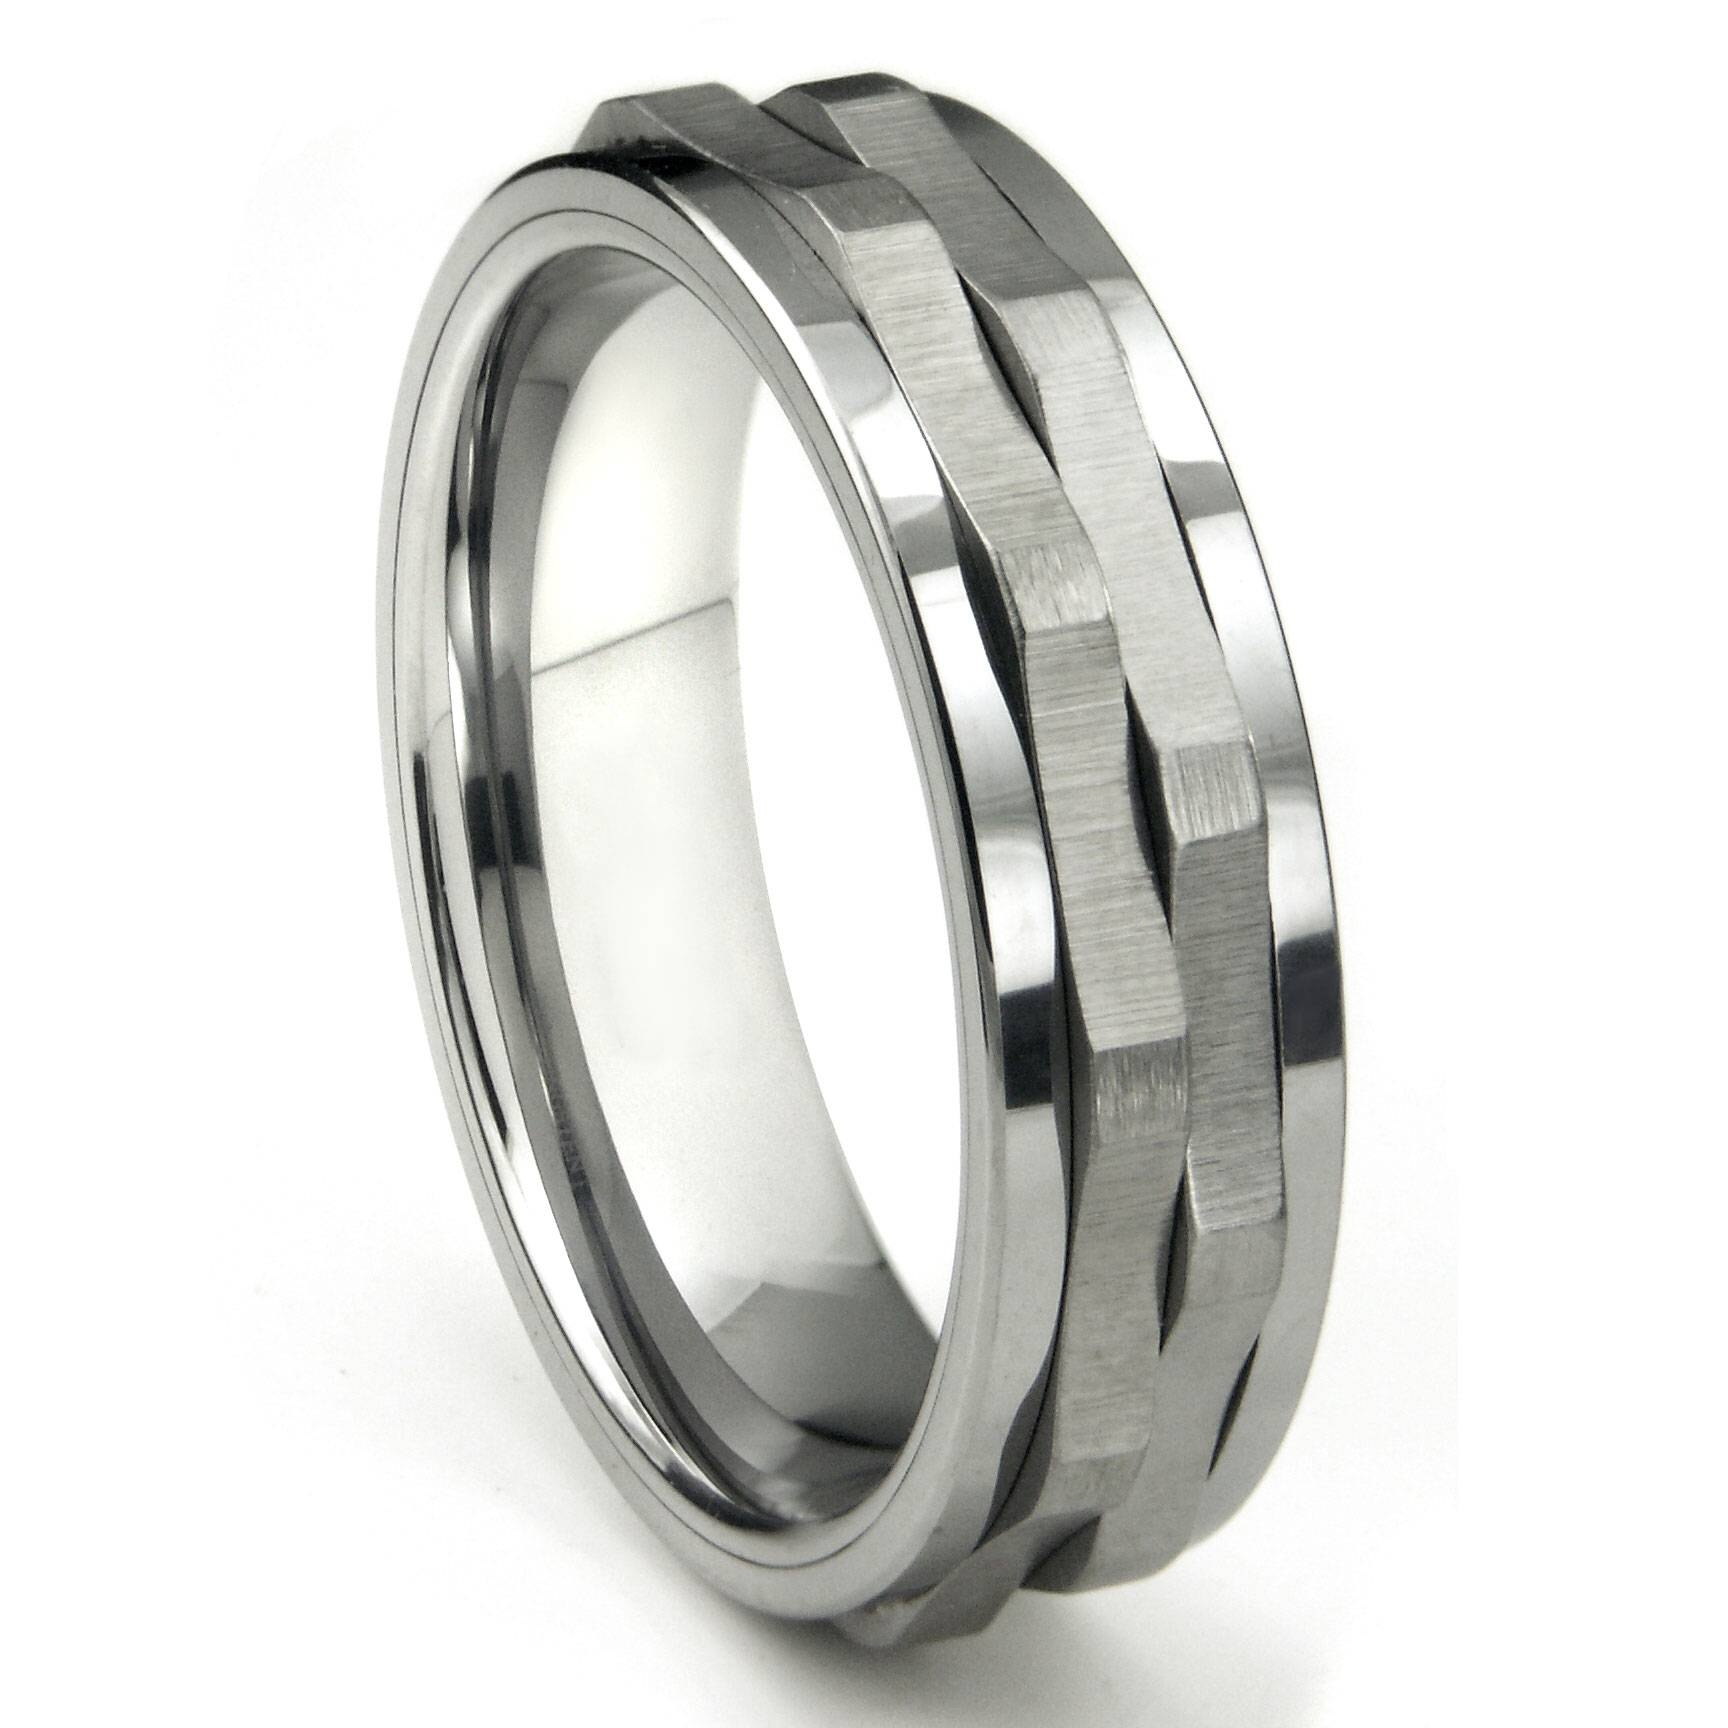 Ninja Star Tungsten Carbide Spinning Wedding Band Ring Intended For Spinning Mens Wedding Bands (Gallery 1 of 15)